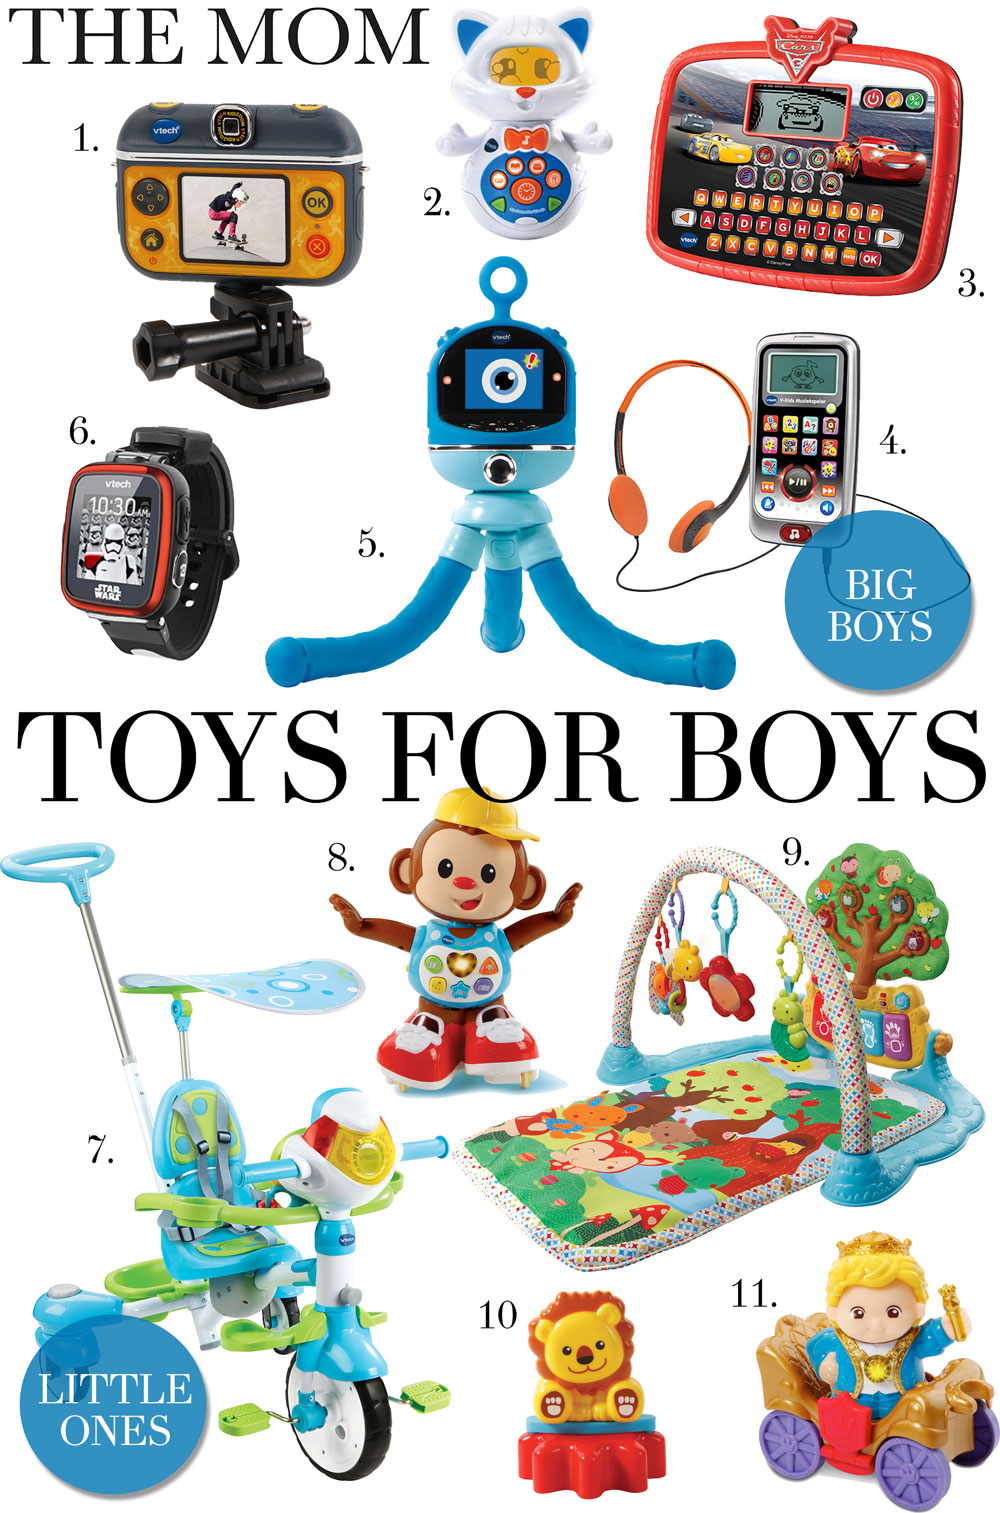 Toys-for-Boys-Vtech-The-Mom